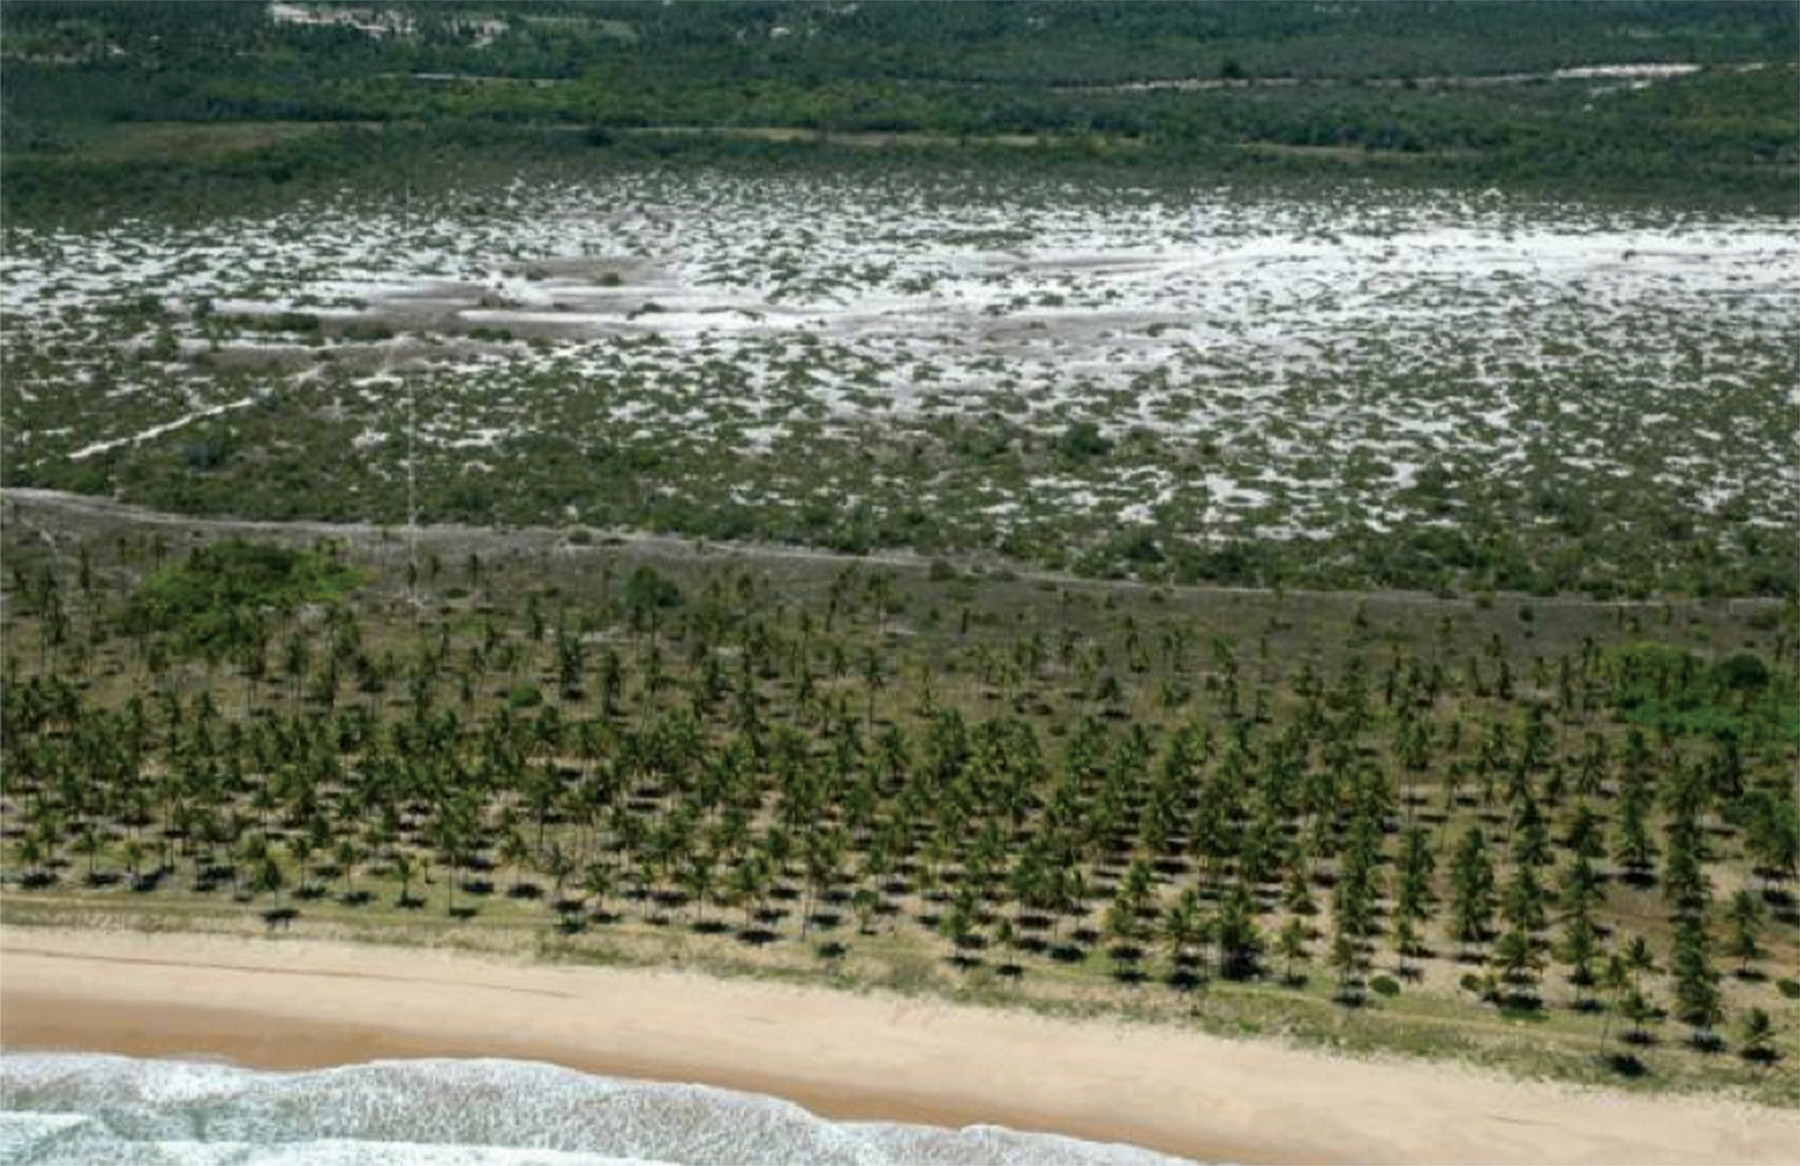 Aerial images of the coastline of northern Bahia, Brazil, in 2000 and 2008 show how the coastline has been developed over time from coconut plantations to resort tourism. © Projeto Tamar Image Bank